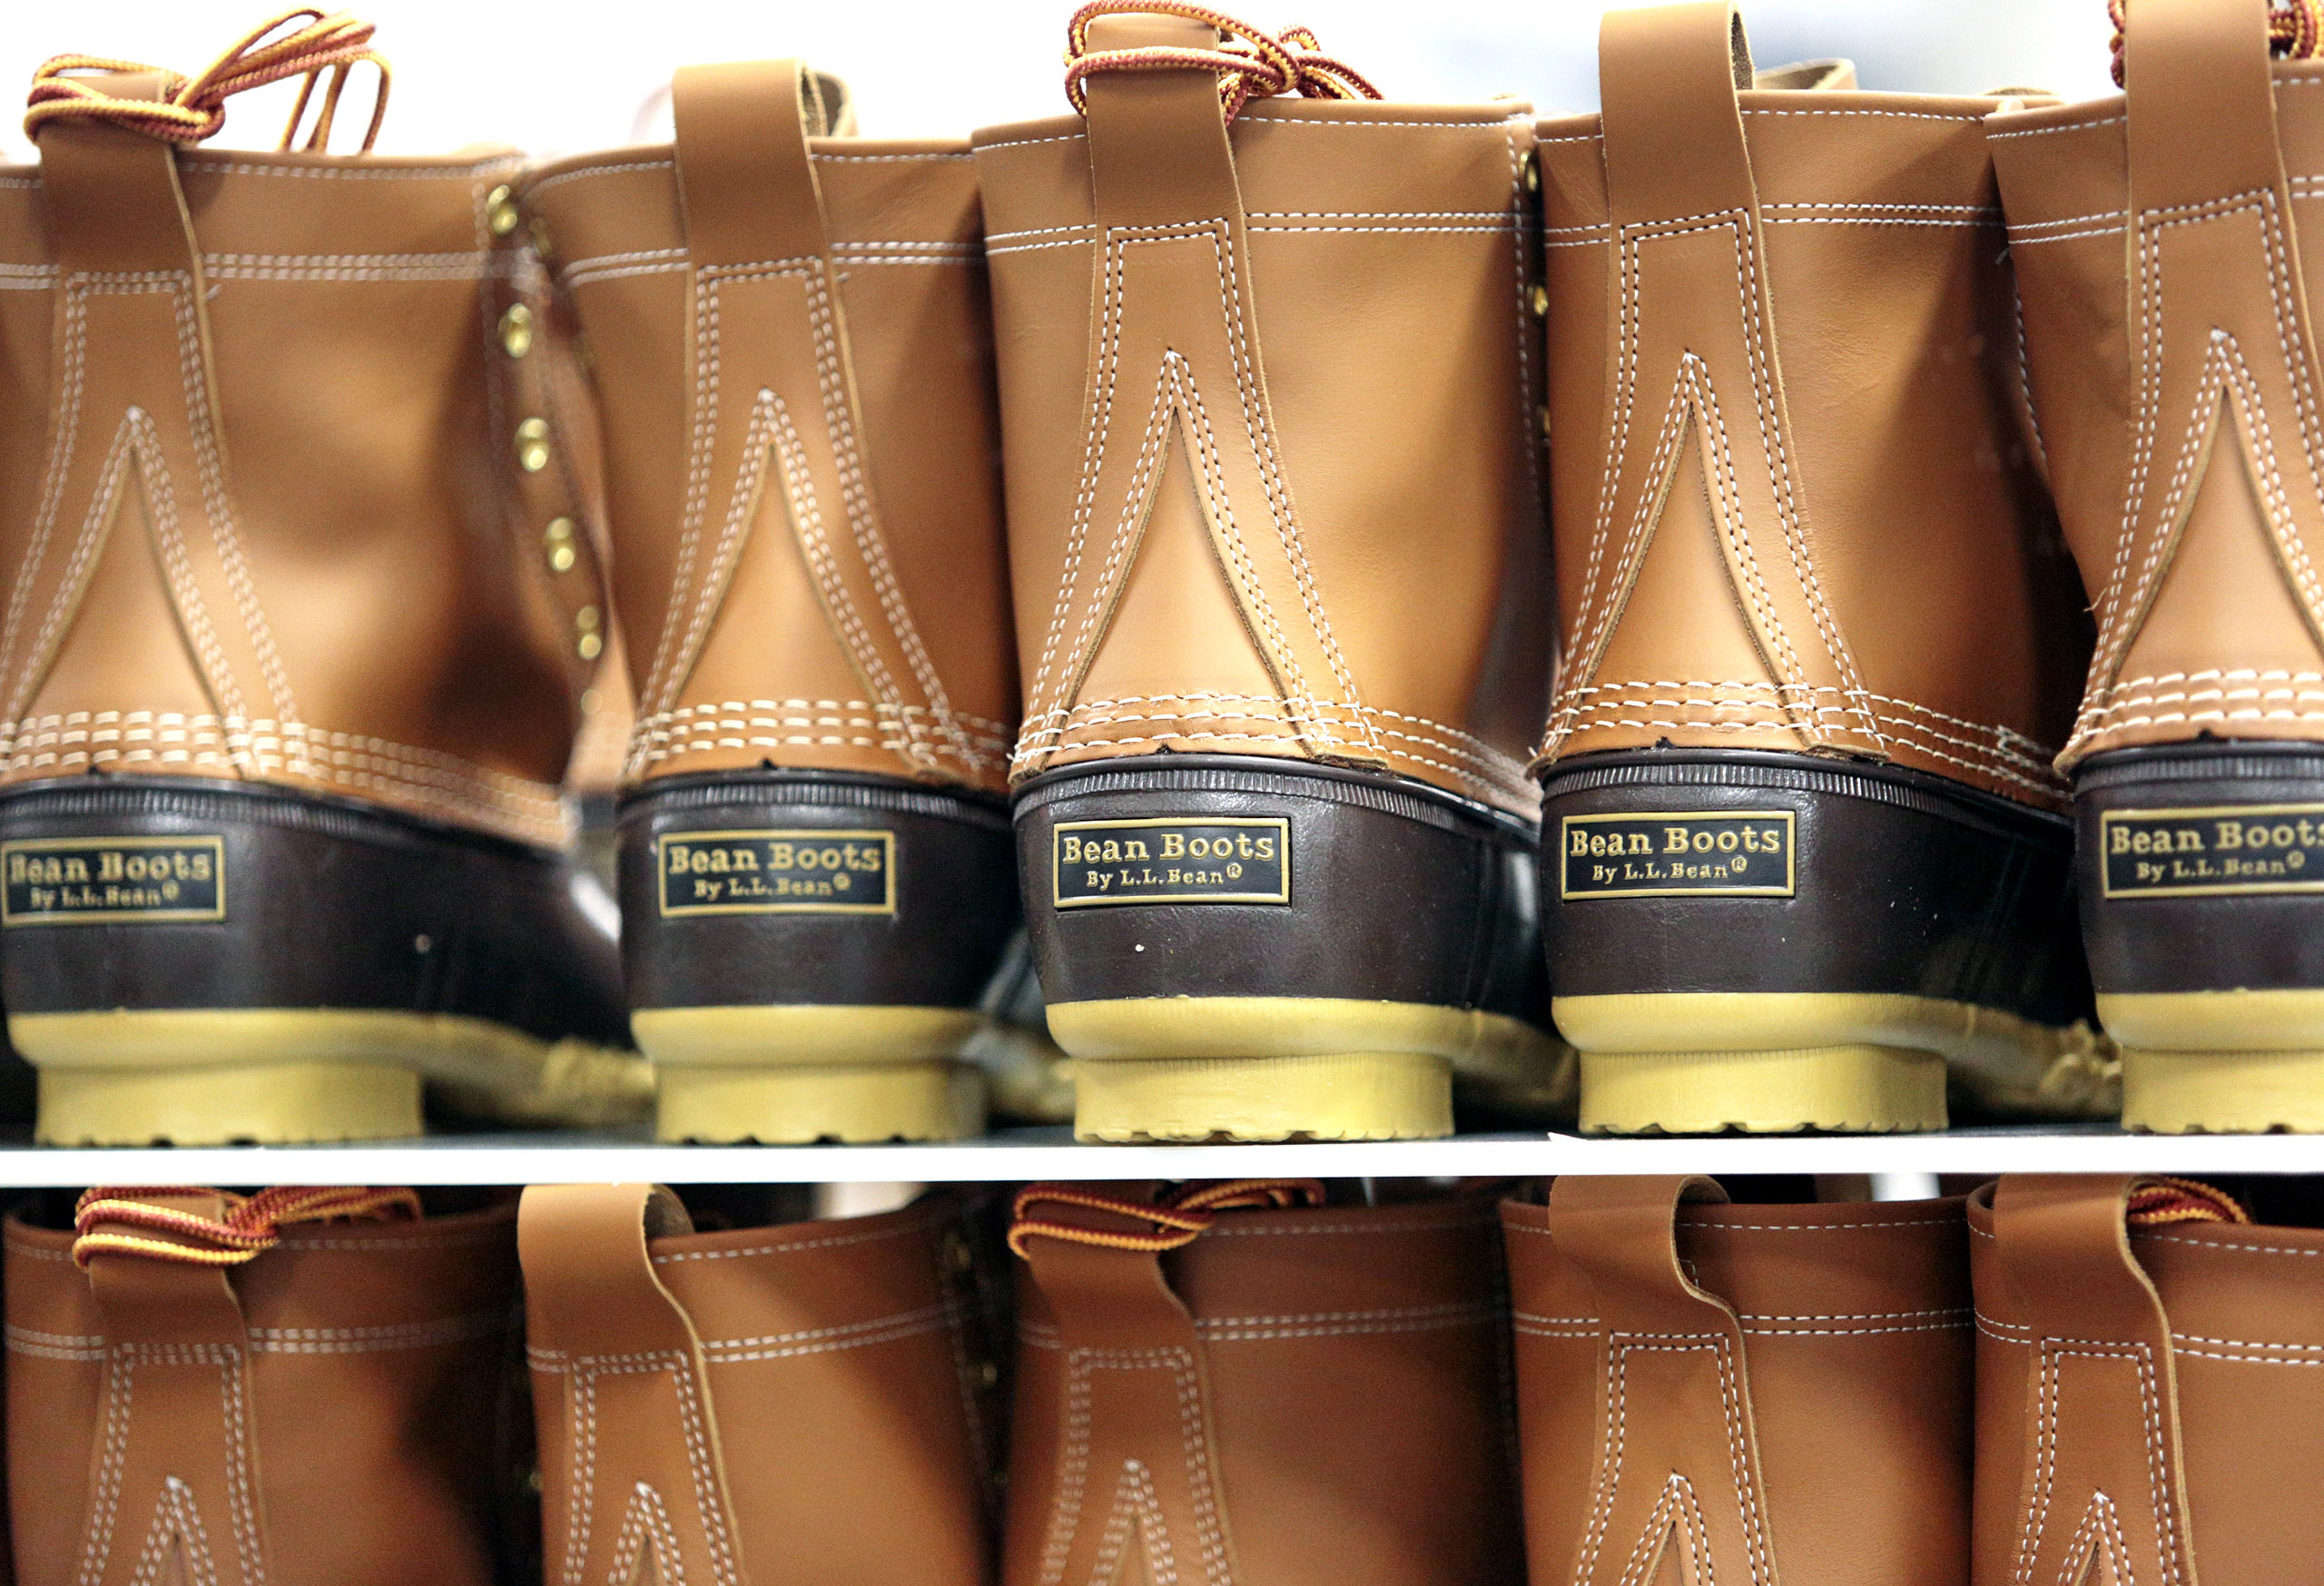 Bean Boots sit on a rack awaiting packaging at the L.L. Bean boot factory in Brunswick.